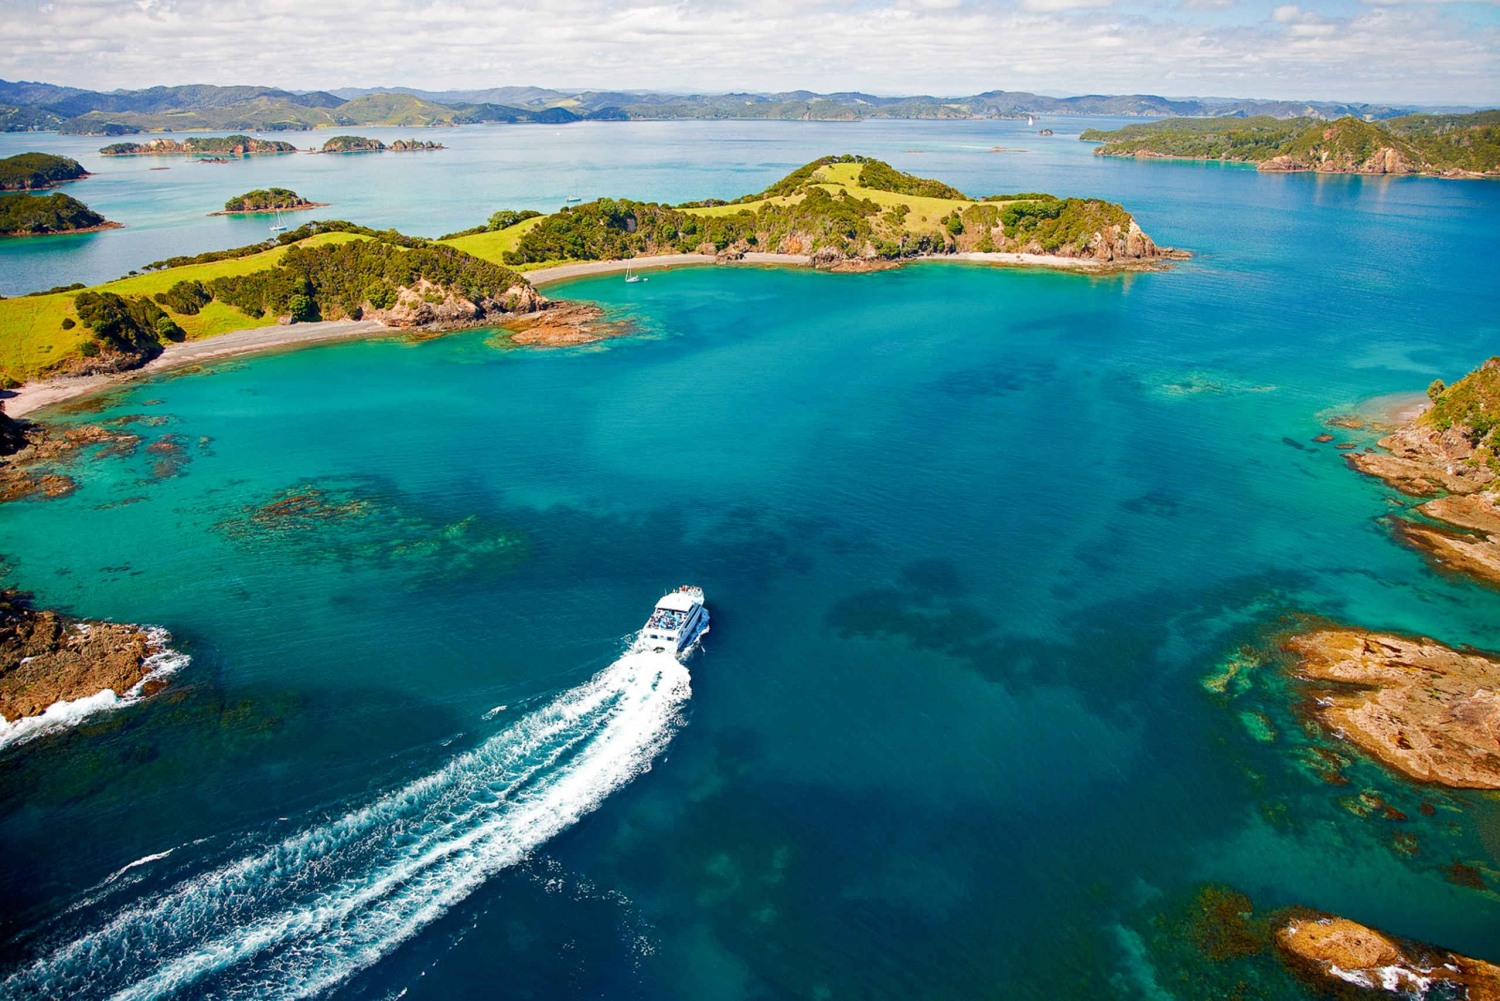 Bay of Islands, Hobbiton & Waitomo 2-Day Tour from Auckland